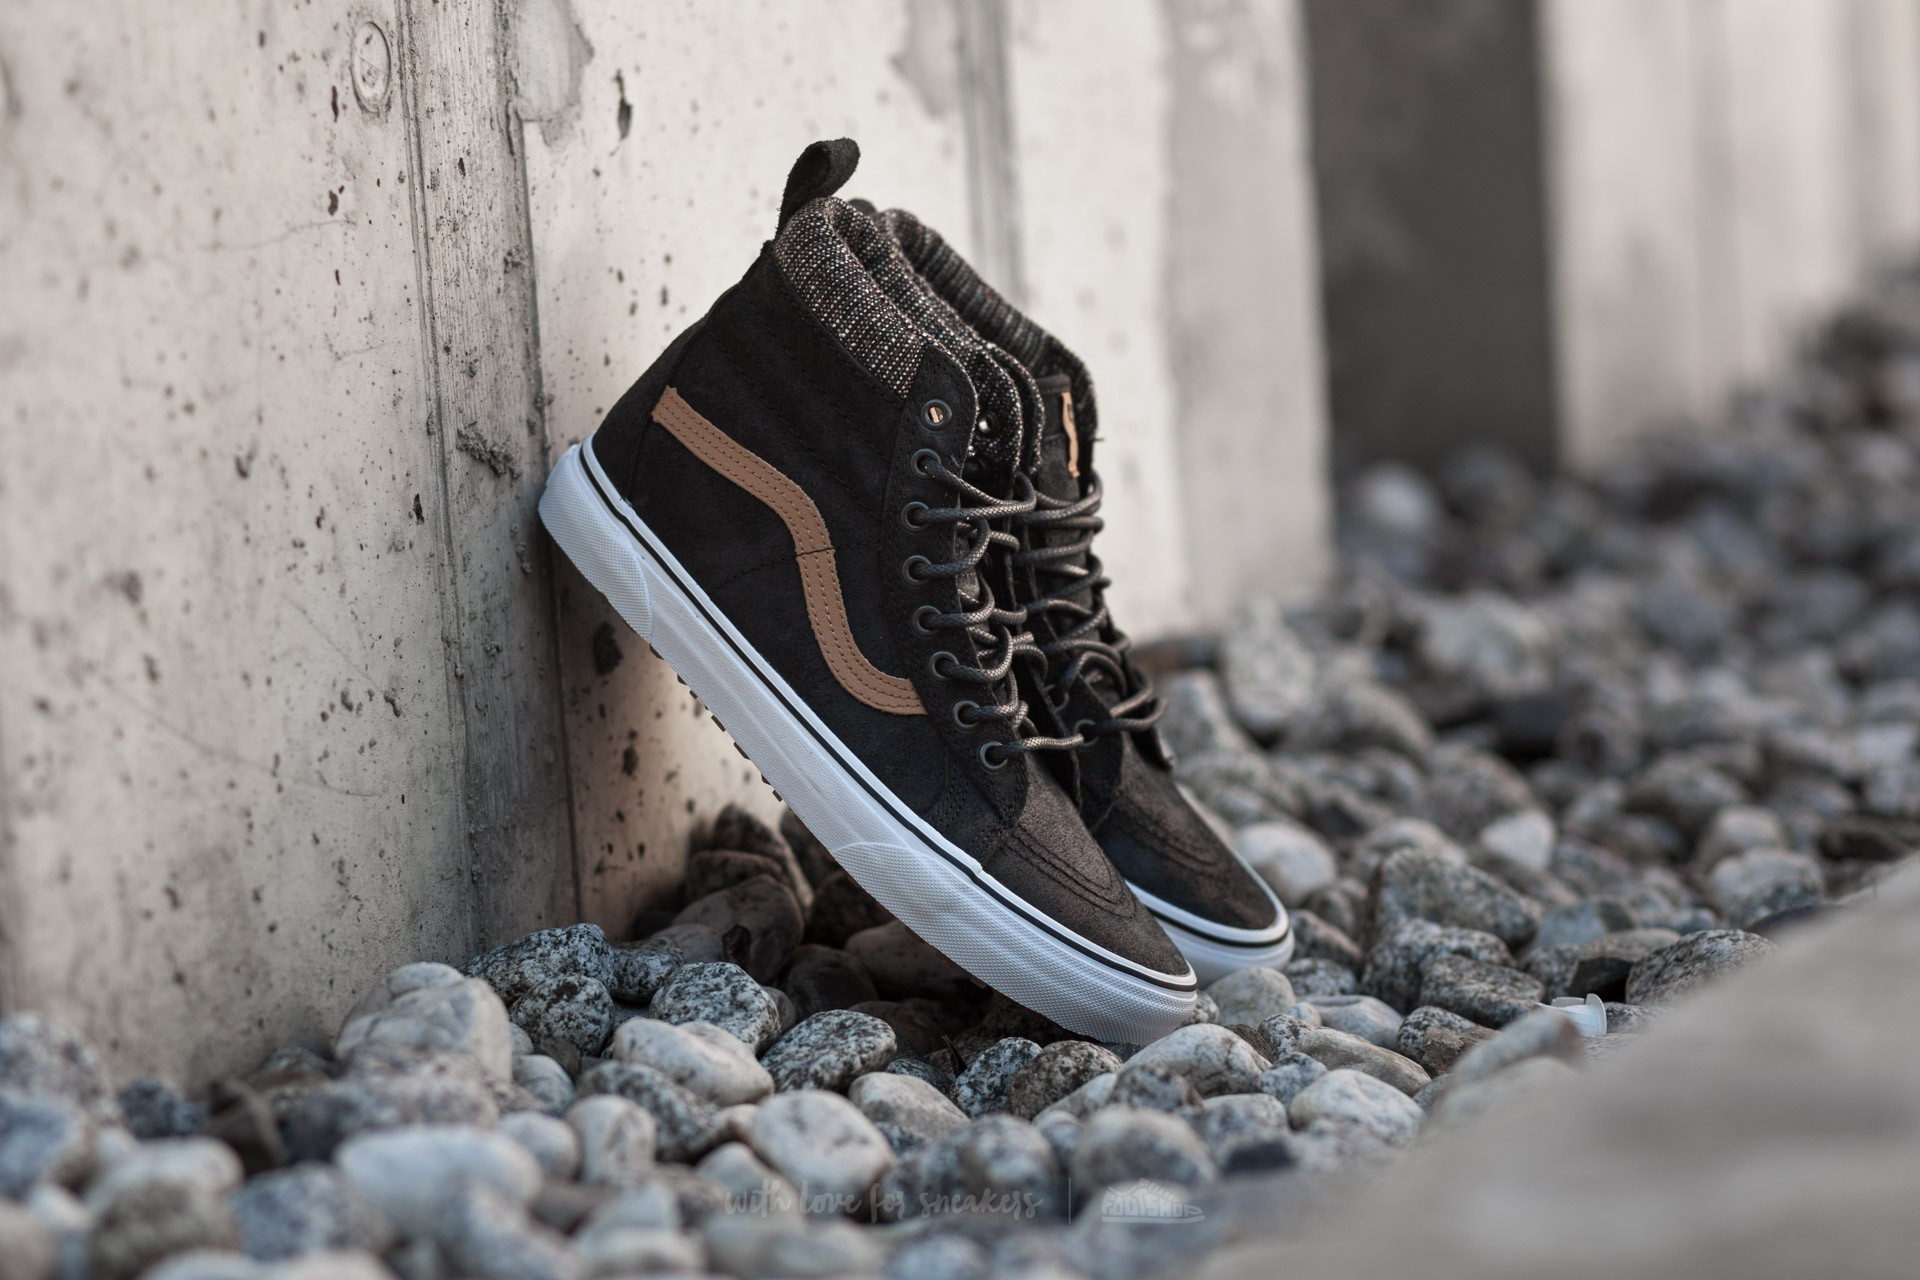 Vans Sk8 Hi MTE (MTE) Black Tweed | Footshop